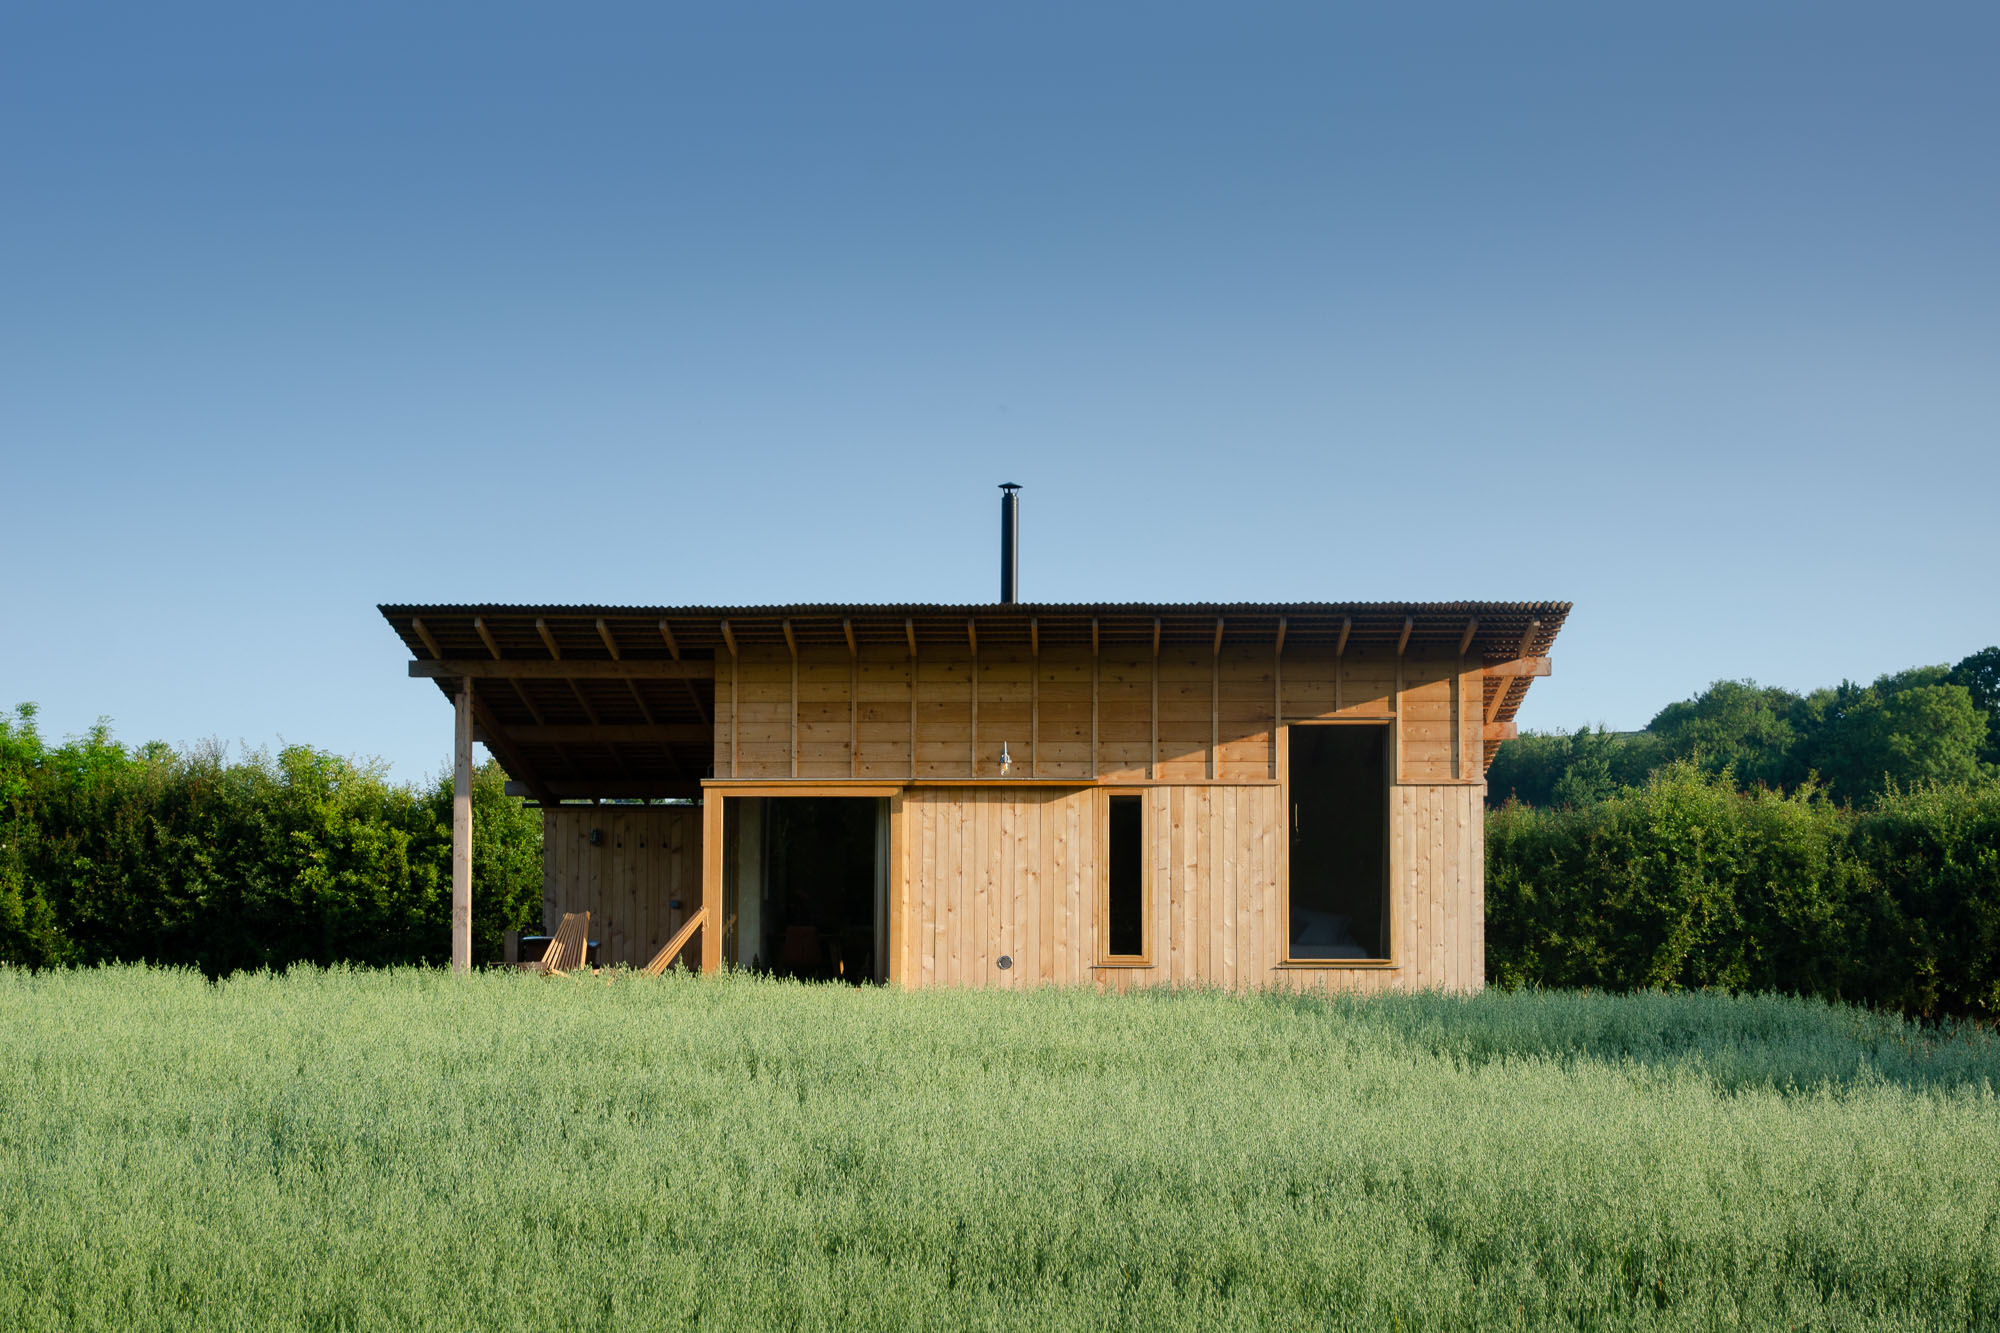 off-grid bespoke cedar cabin with covered veranda, outdoor copper and bench overlooking nature landscape